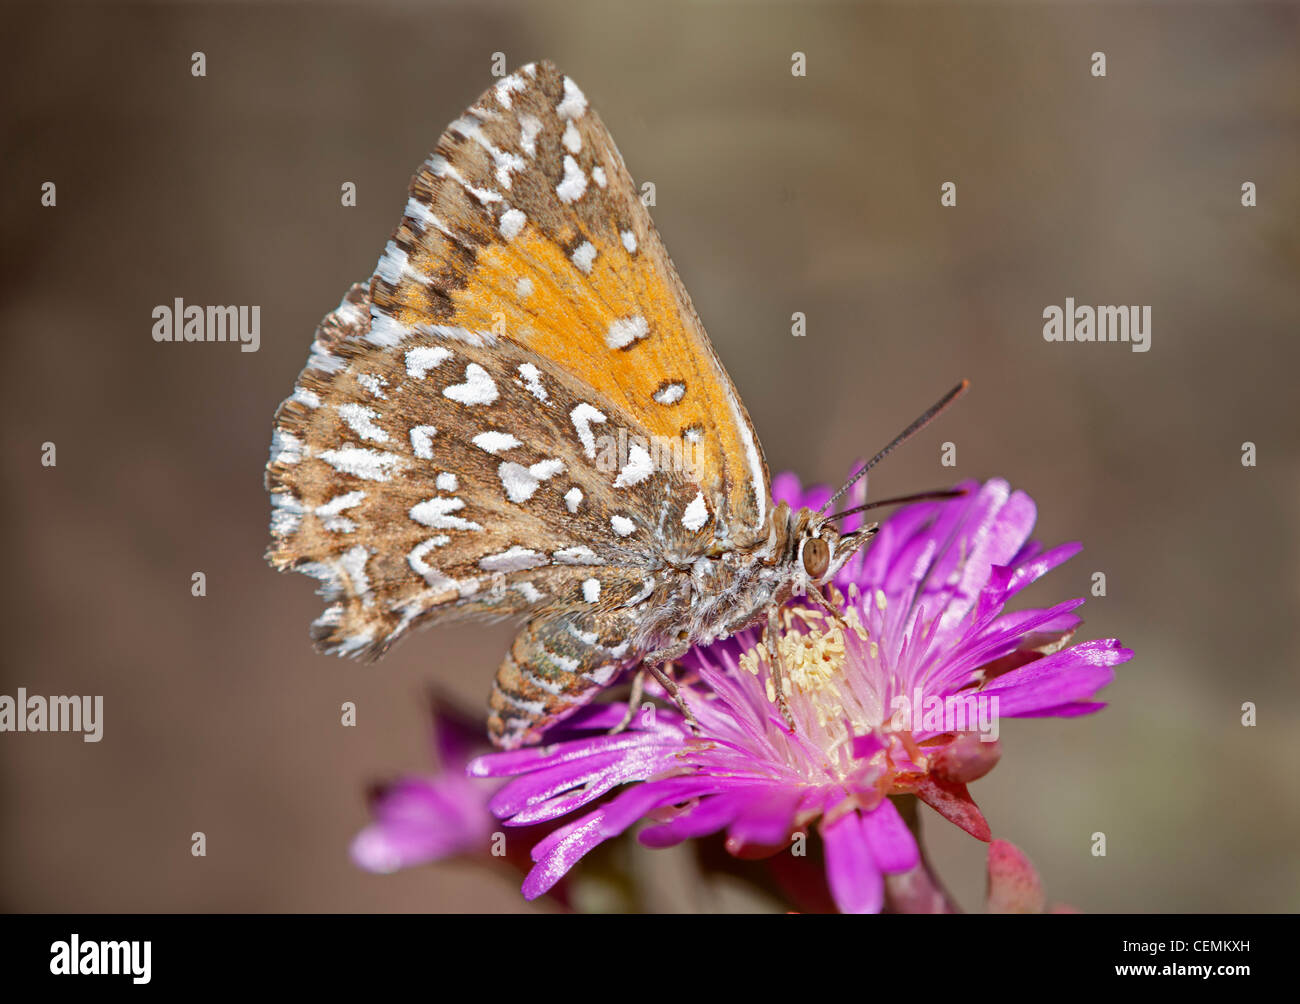 Bộ sưu tập cánh vẩy 4 - Page 2 Large-silver-spotted-copper-trimenia-argyroplaga-indigenous-butterfly-CEMKXH